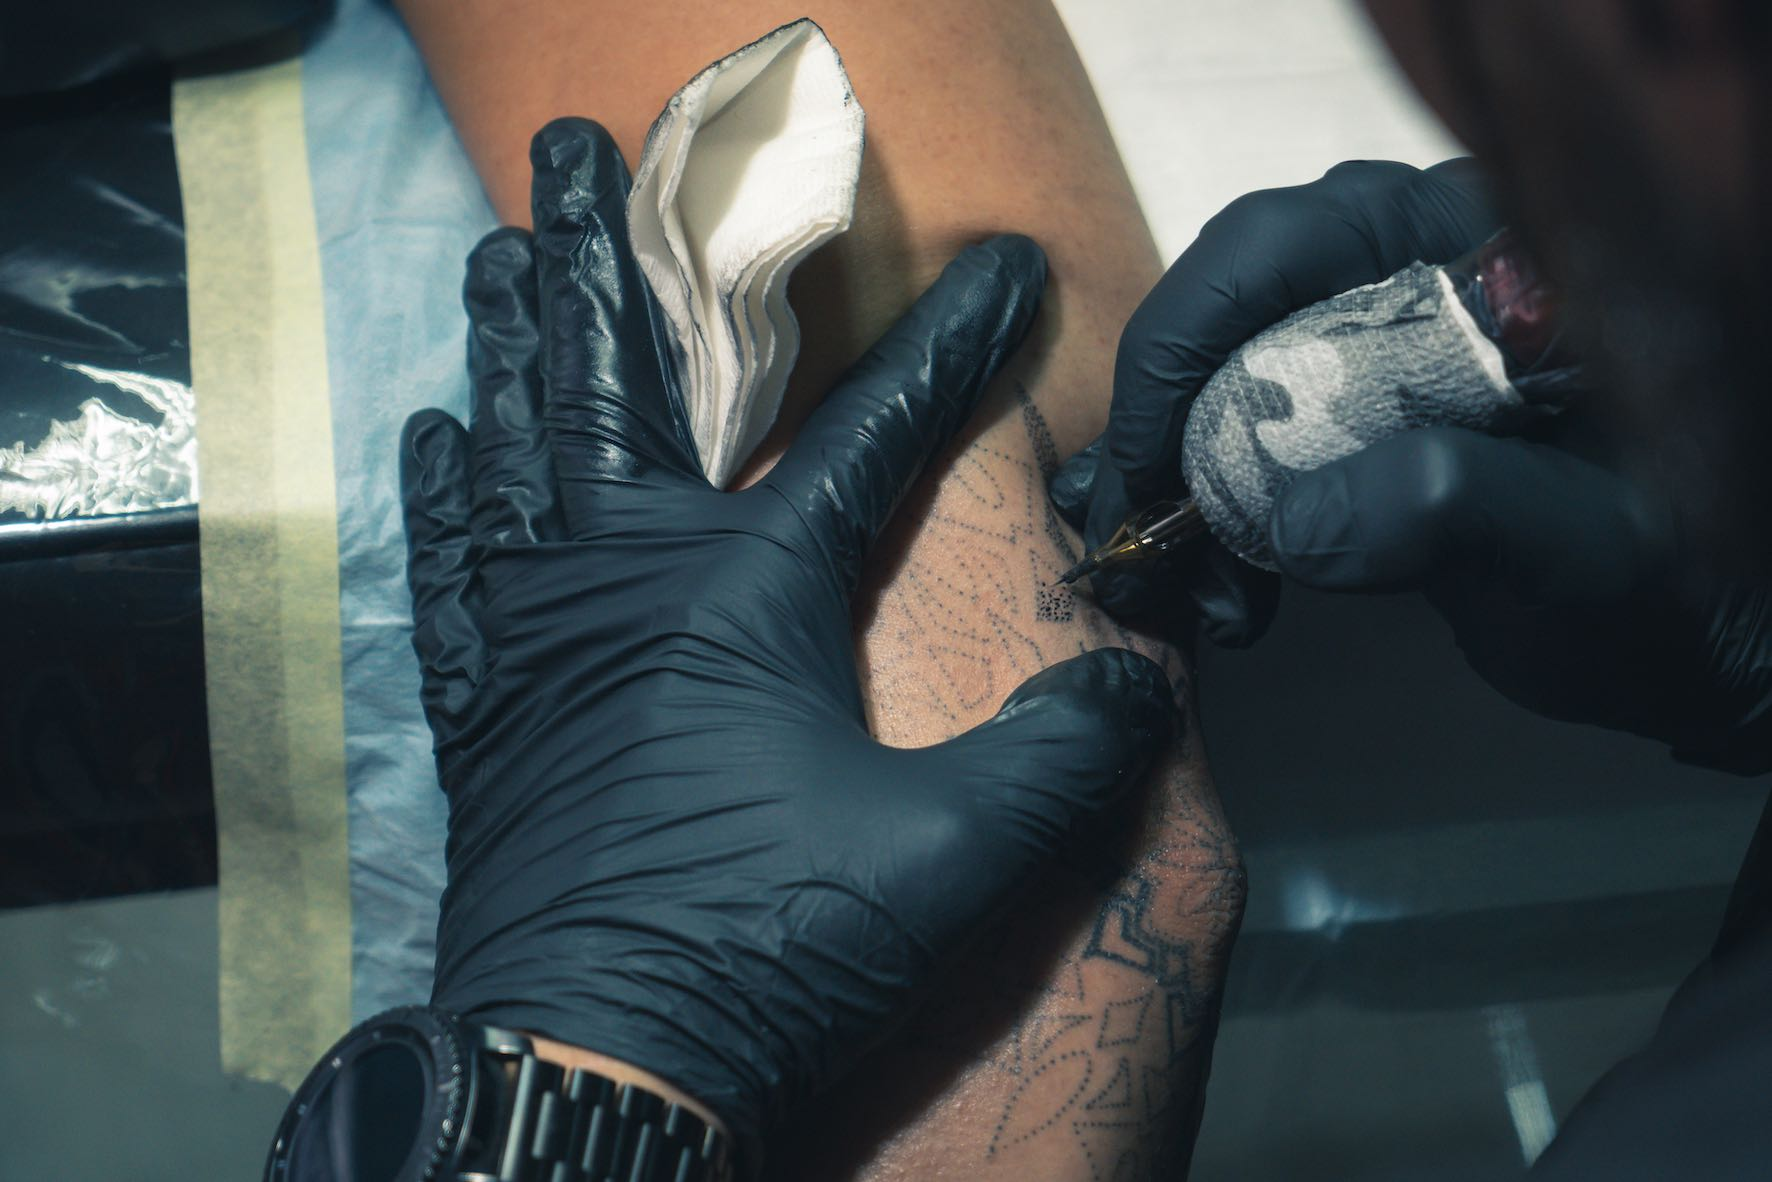 Meet tattoo artist Tony Barcelos working out of Awhe Tattoo and Lifestyle Studio